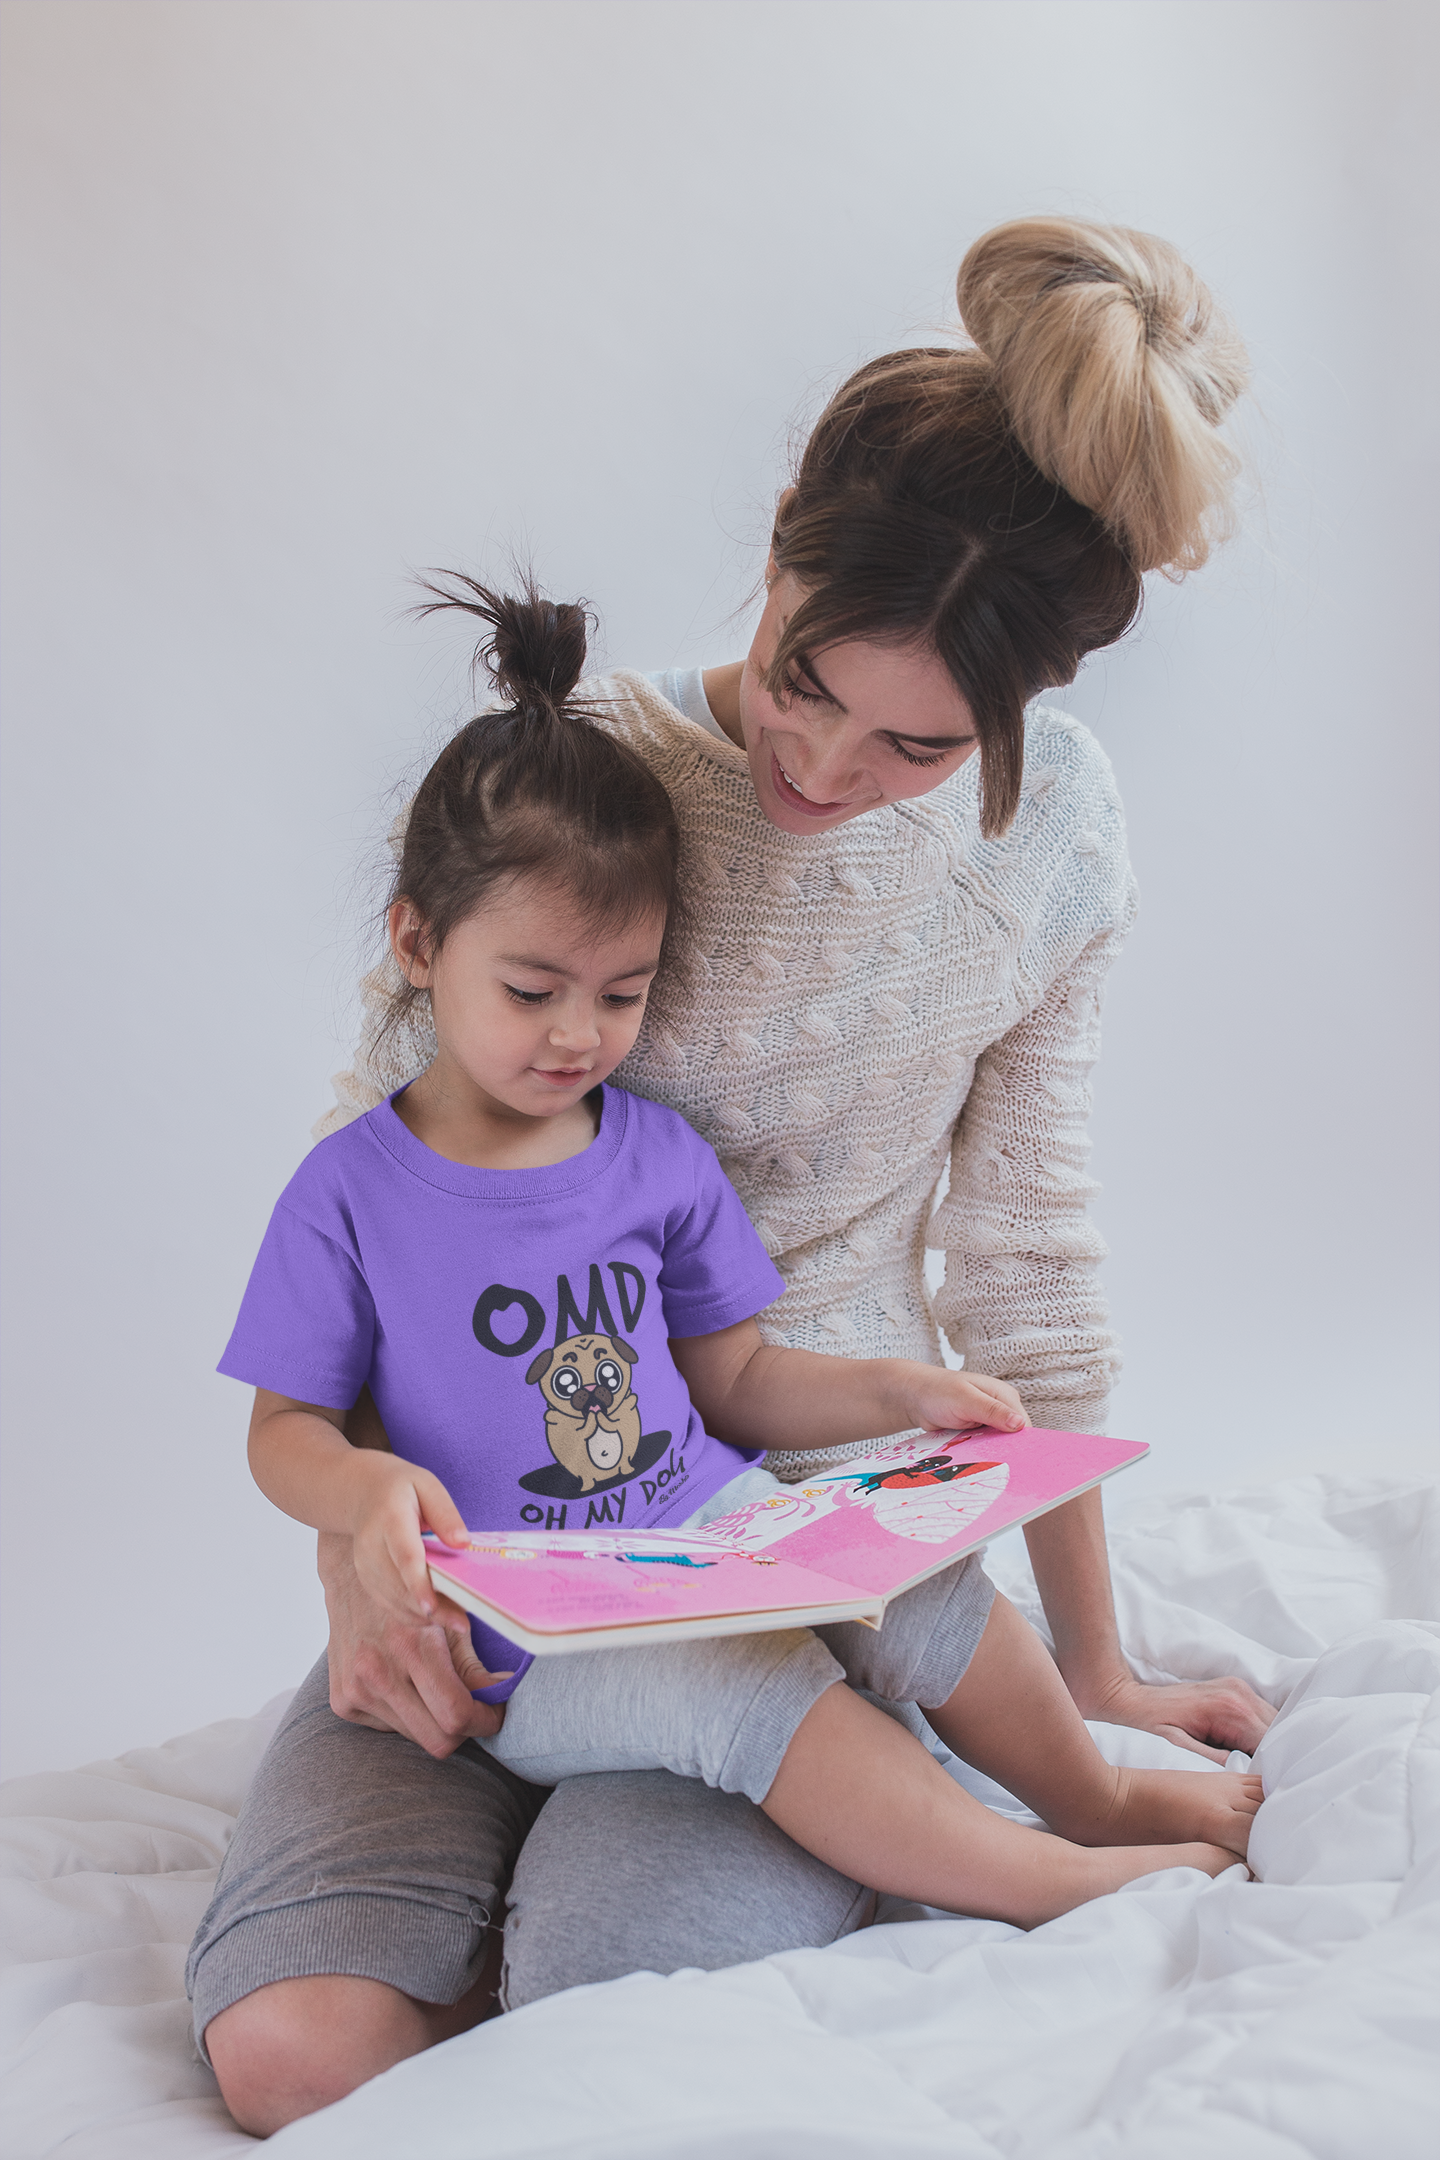 girl-reading-a-book-wearing-a-t-shirt-mockup-with-her-mom-sitting-on-bed-a20285